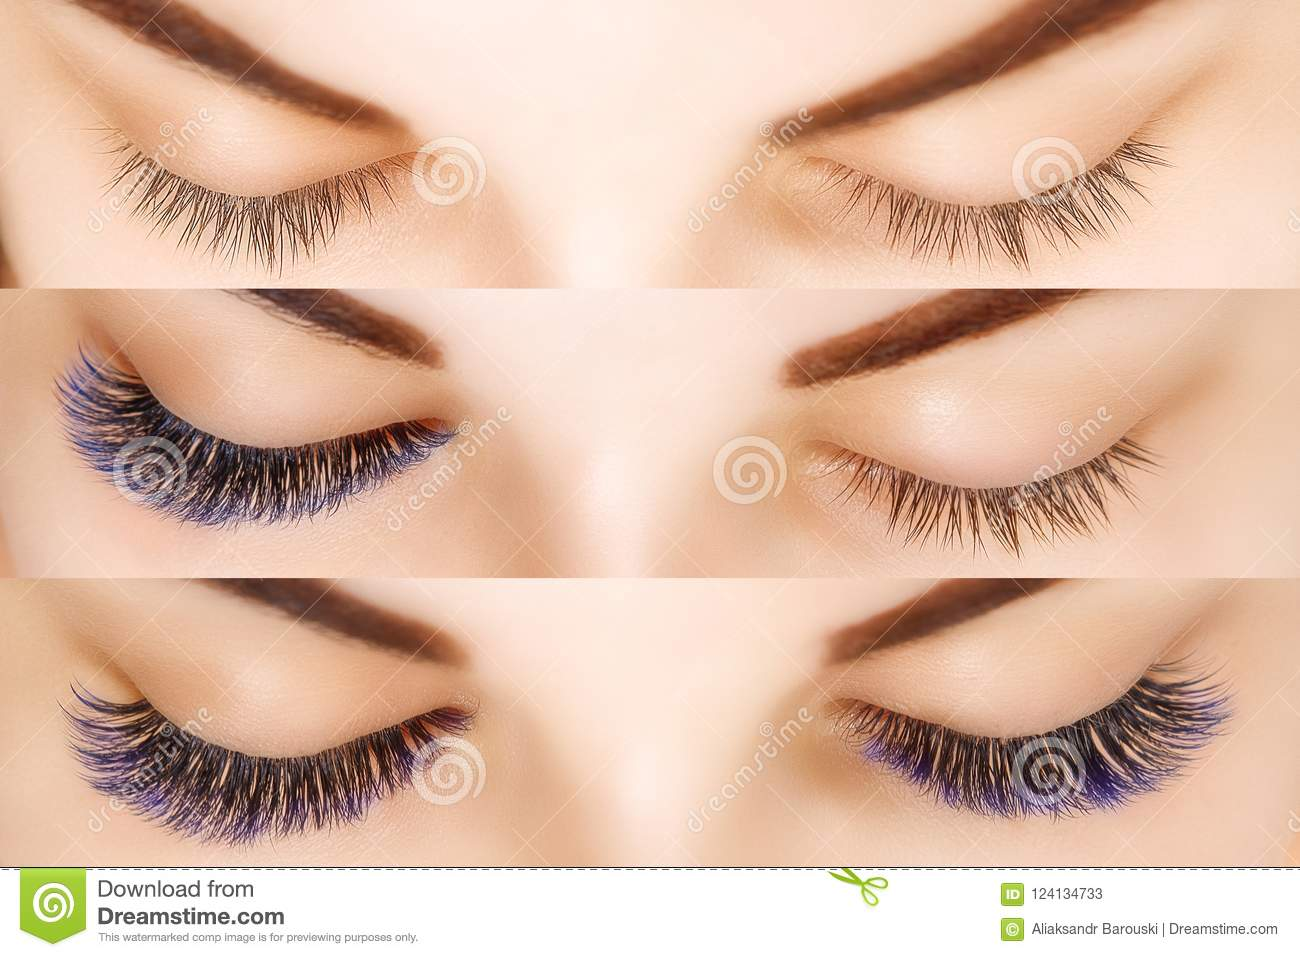 Eyelash Extension Comparison Of Female Eyes Before And After Blue